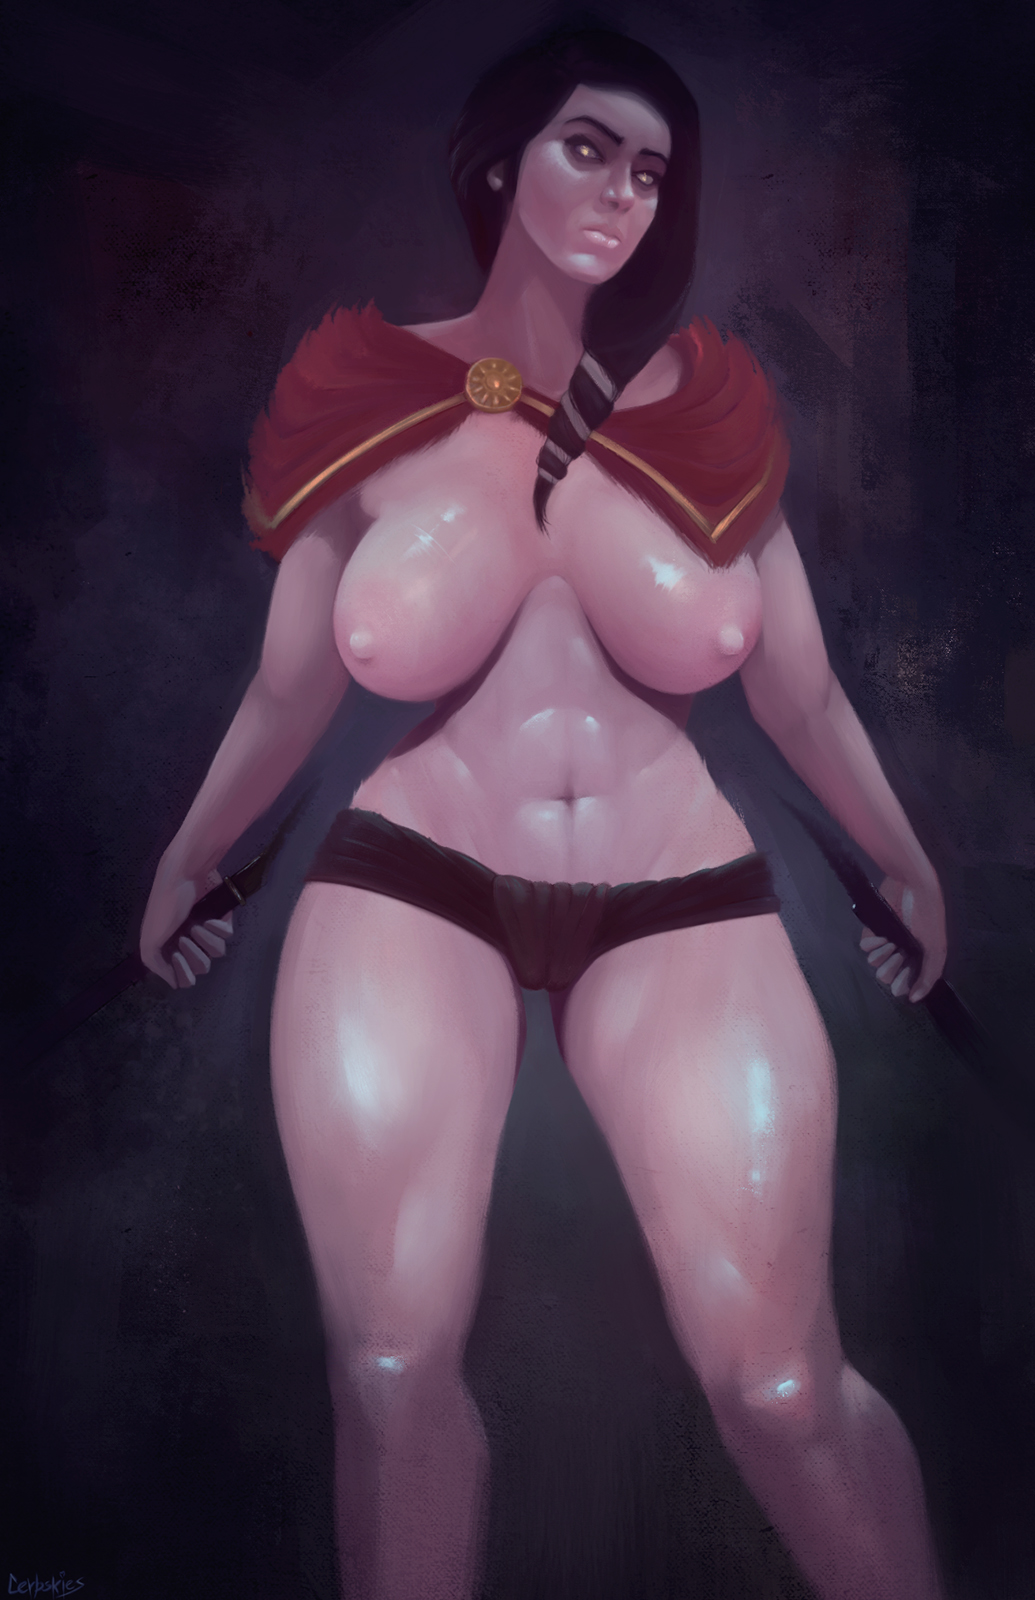 creed kassandra odyssey assassin's hentai How to give yourself a wedgie in bed